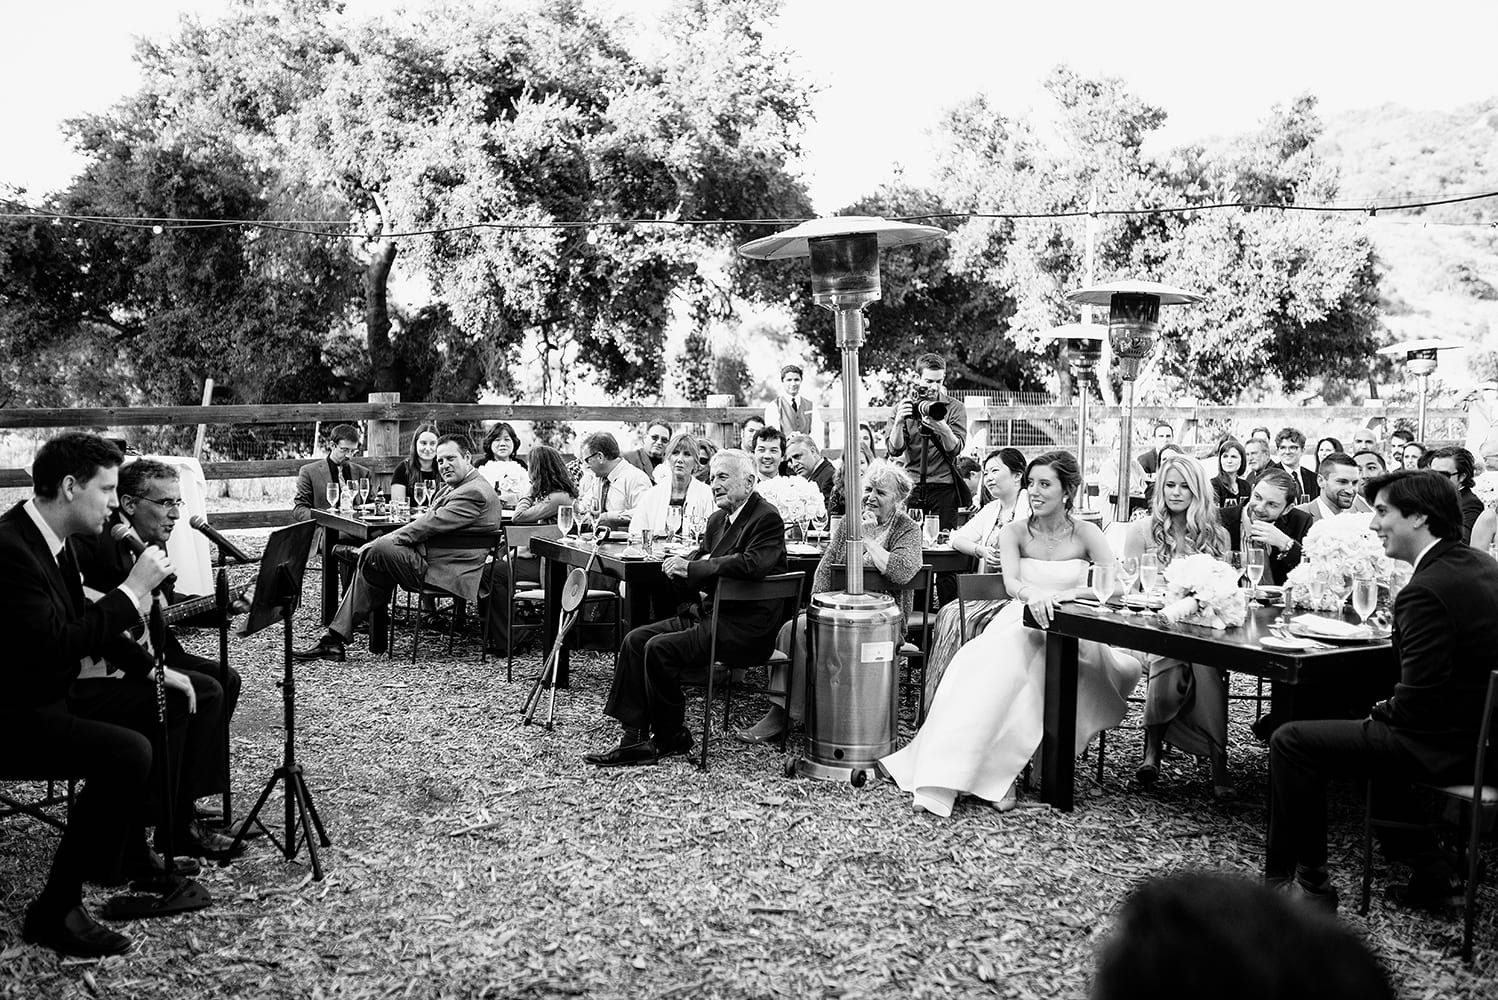 extravagent-Ojai-Valley-California-wedding0029